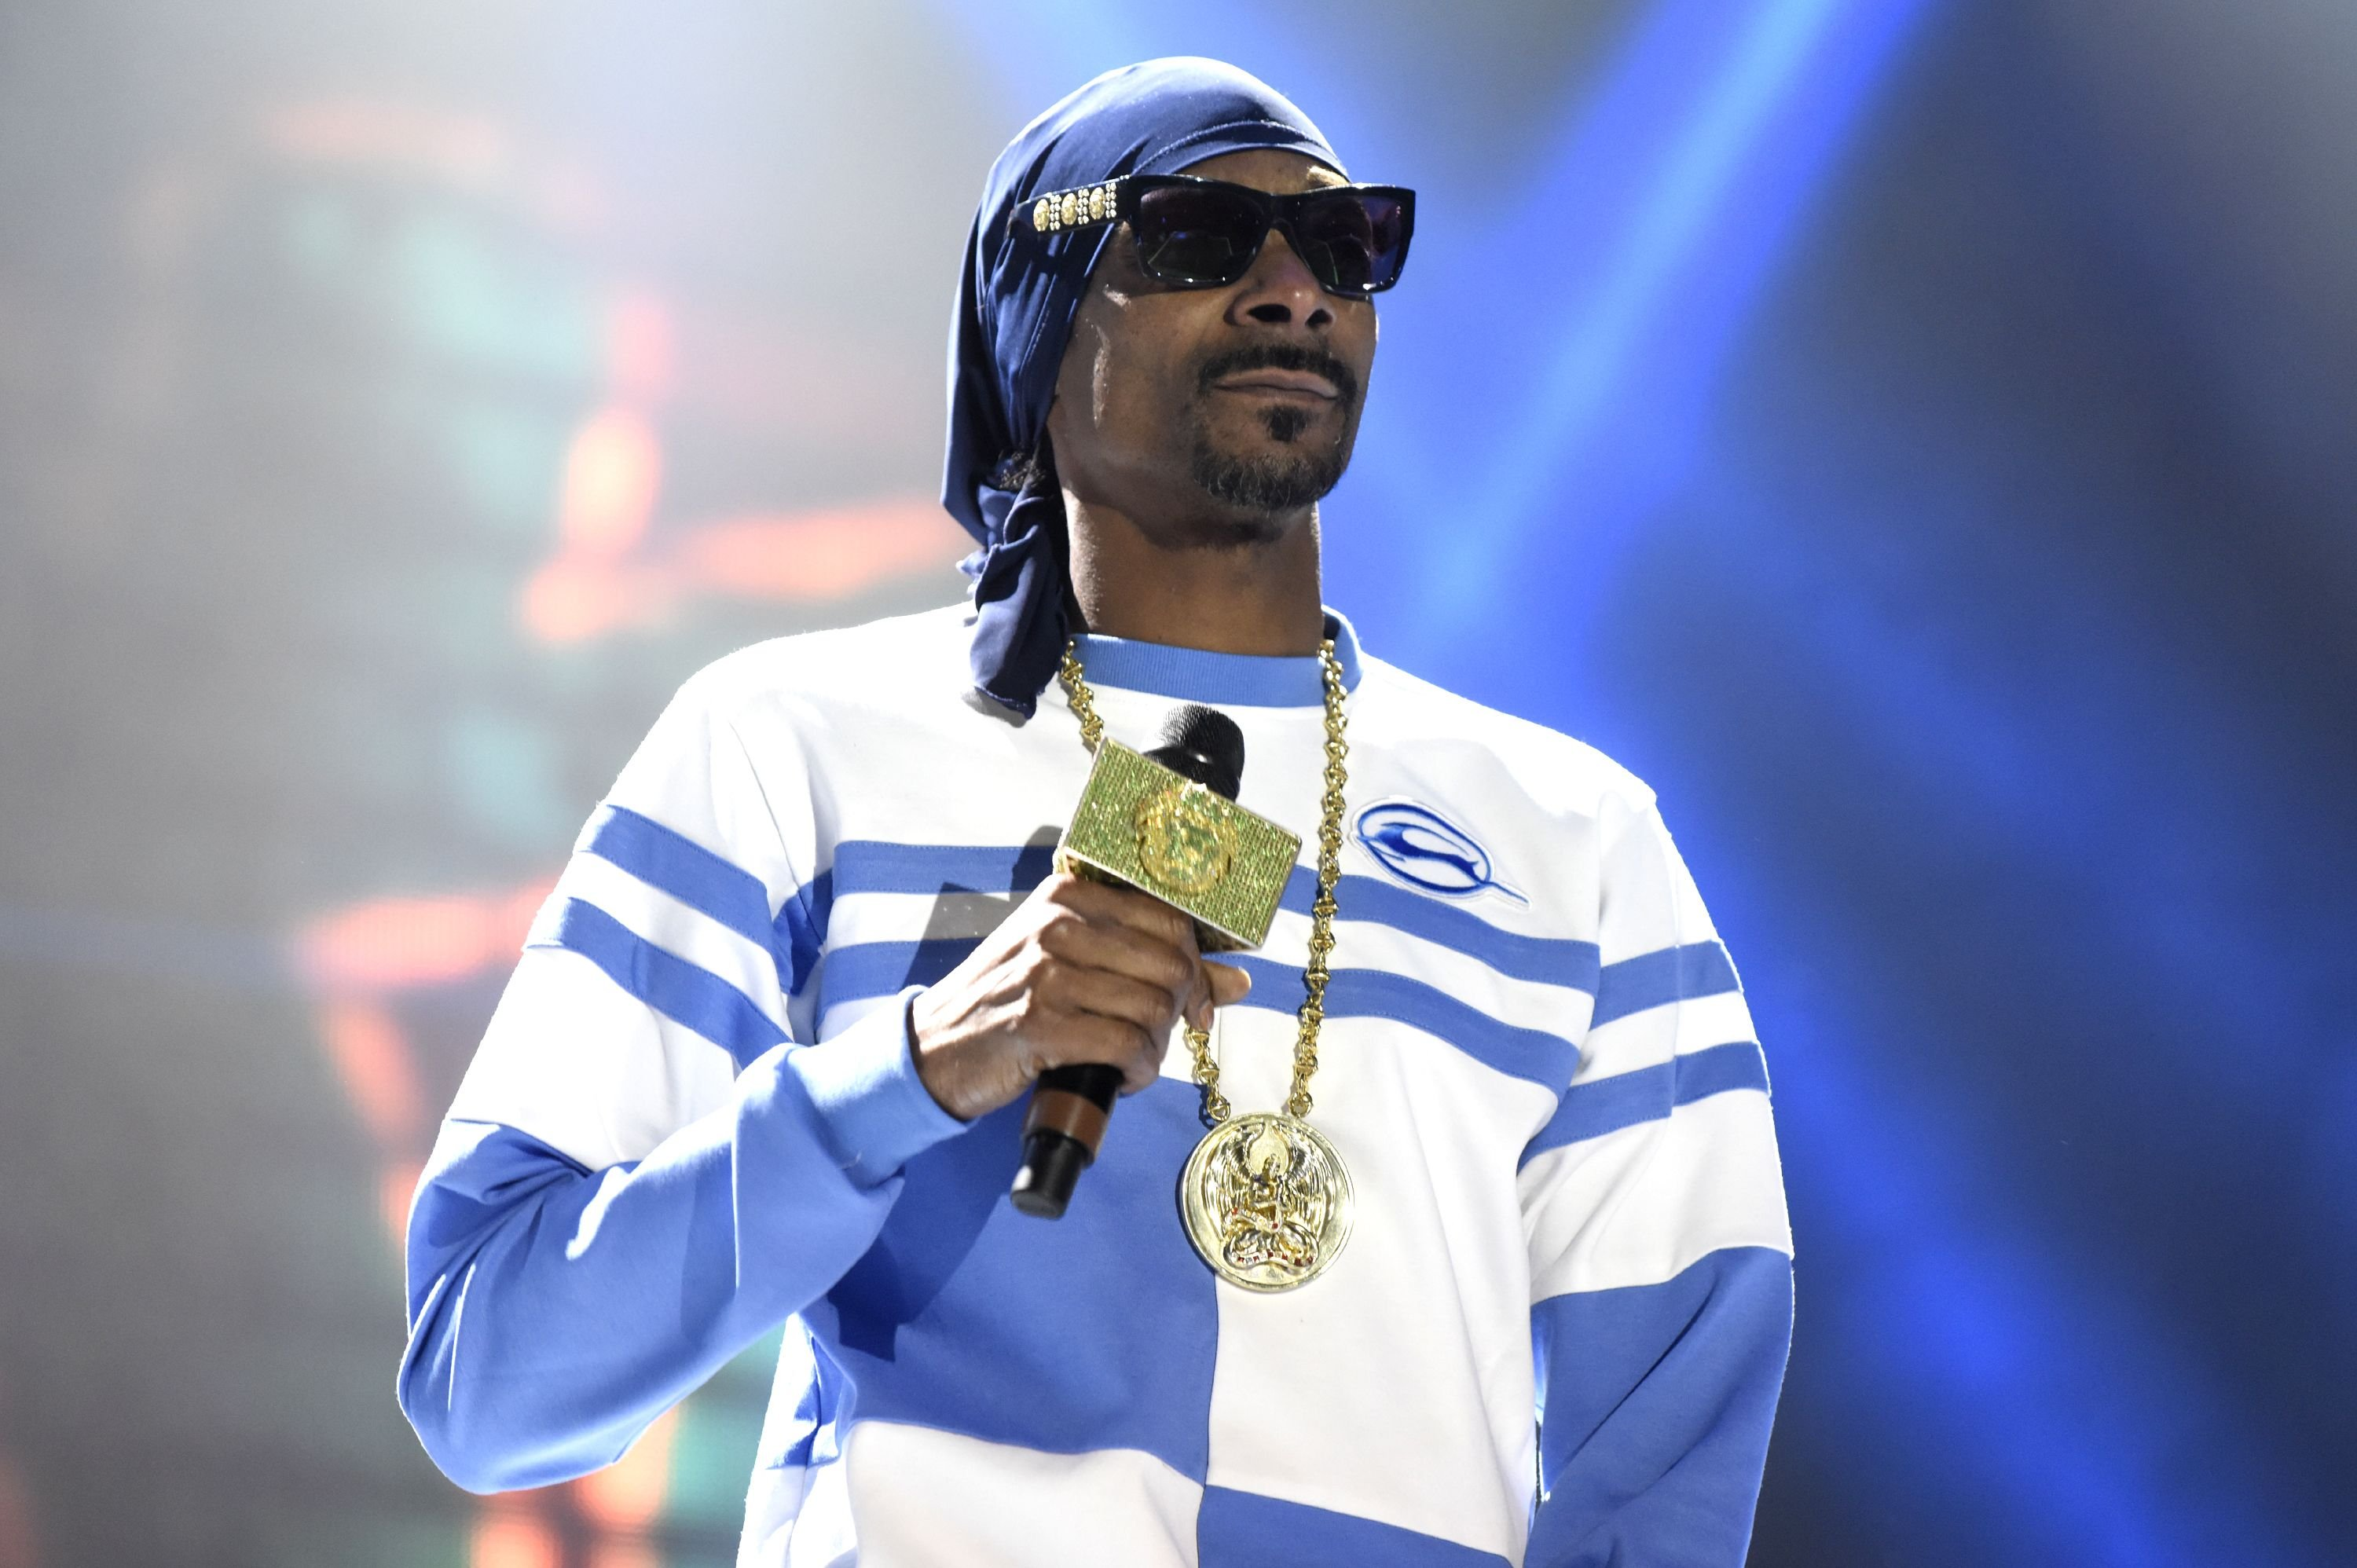 Snoop Dogg at the PowWow Jam at the 2018 Okeechobee Music Festival at Sunshine Grove on March 3, 2018 | Photo: Getty Images